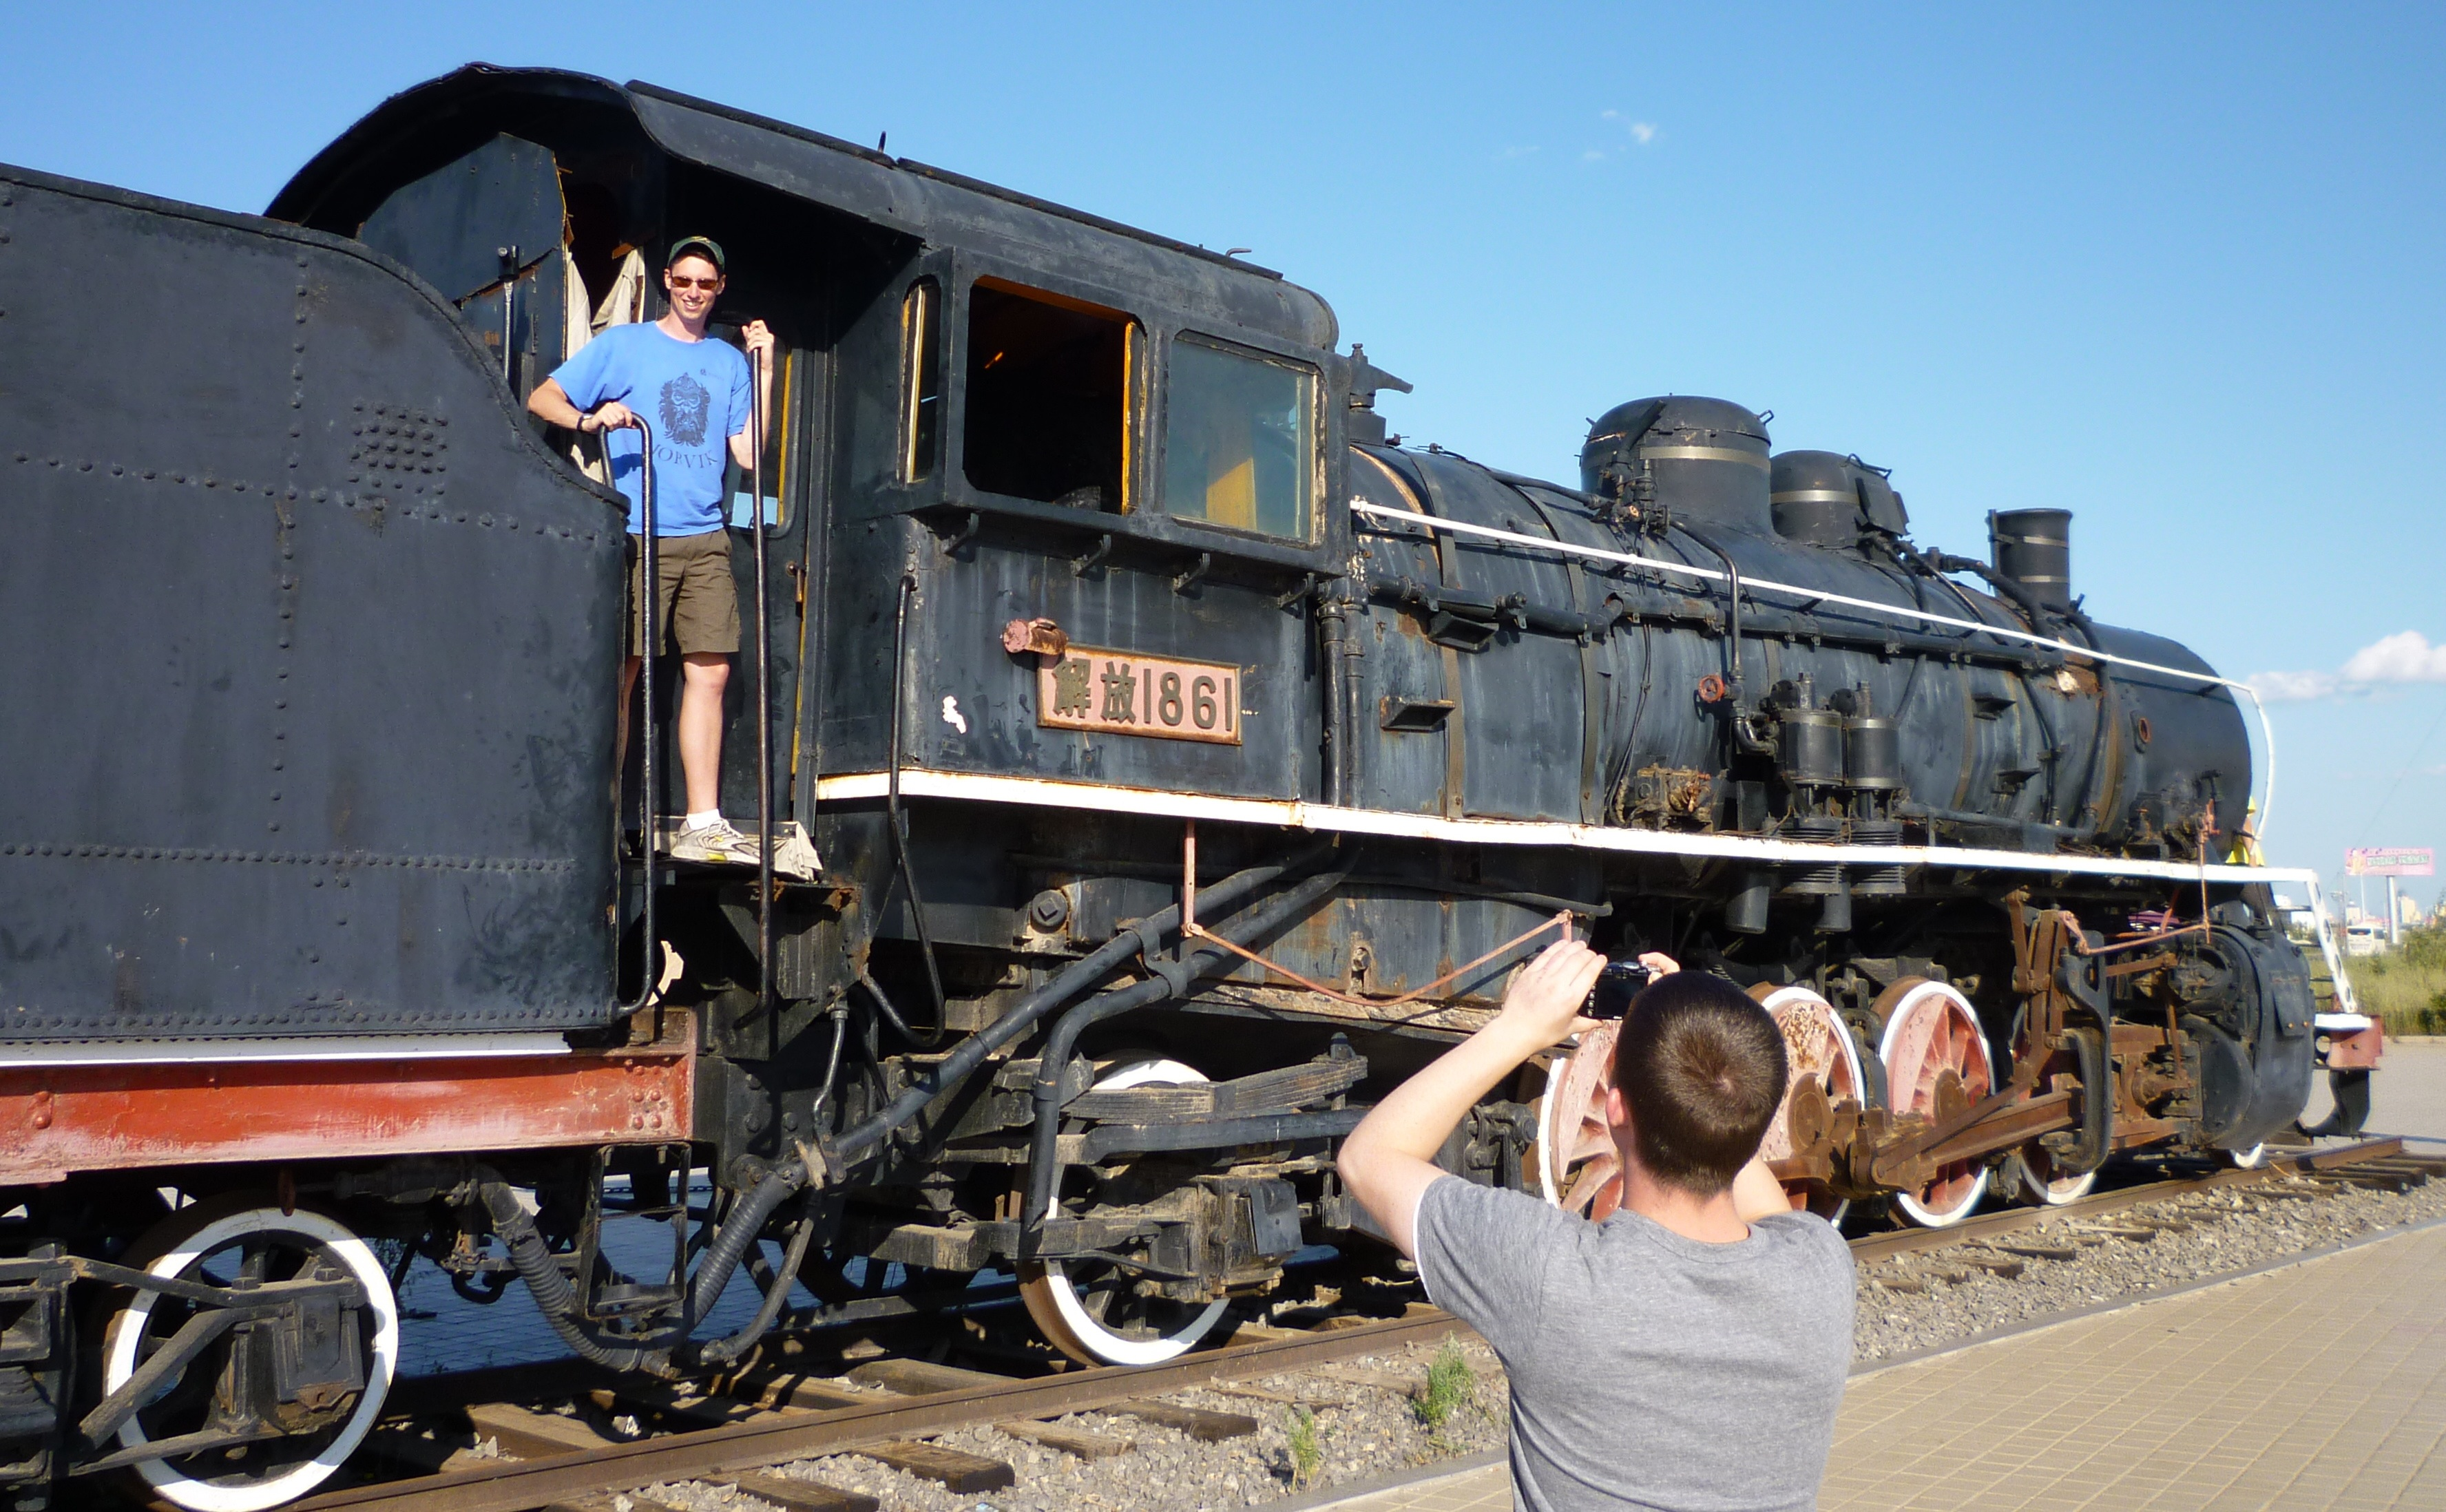 Locomotive that would take Mao to Moscow